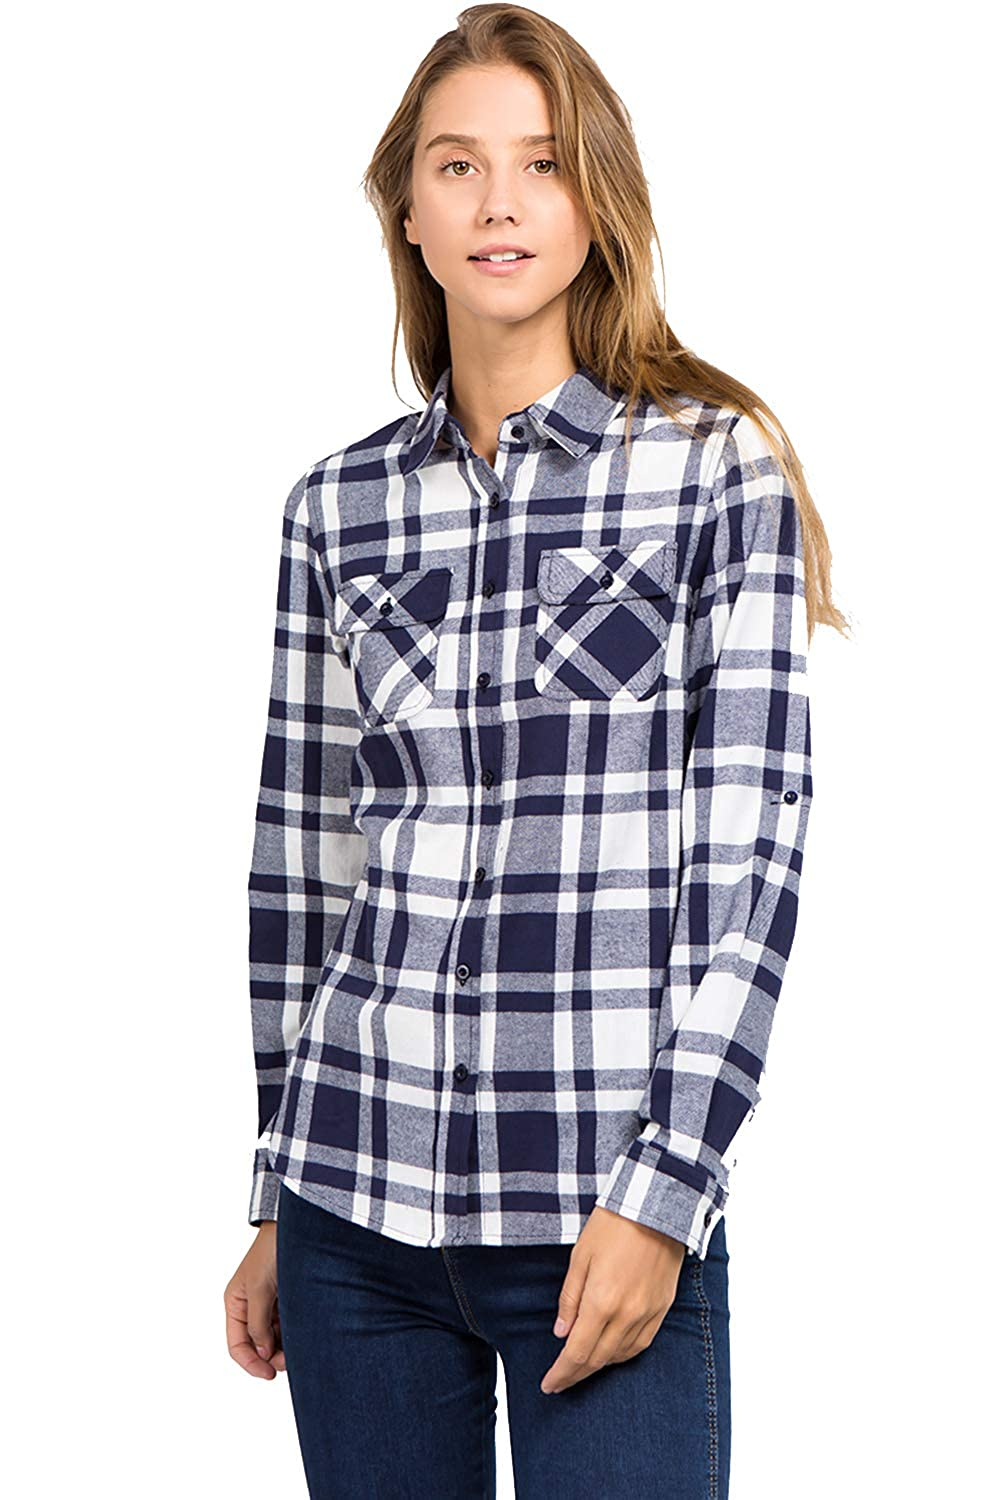 12 muselooks Women's LongSleeve Button Up ClassicFit Lightweight Plaid Flannel Shirt Red